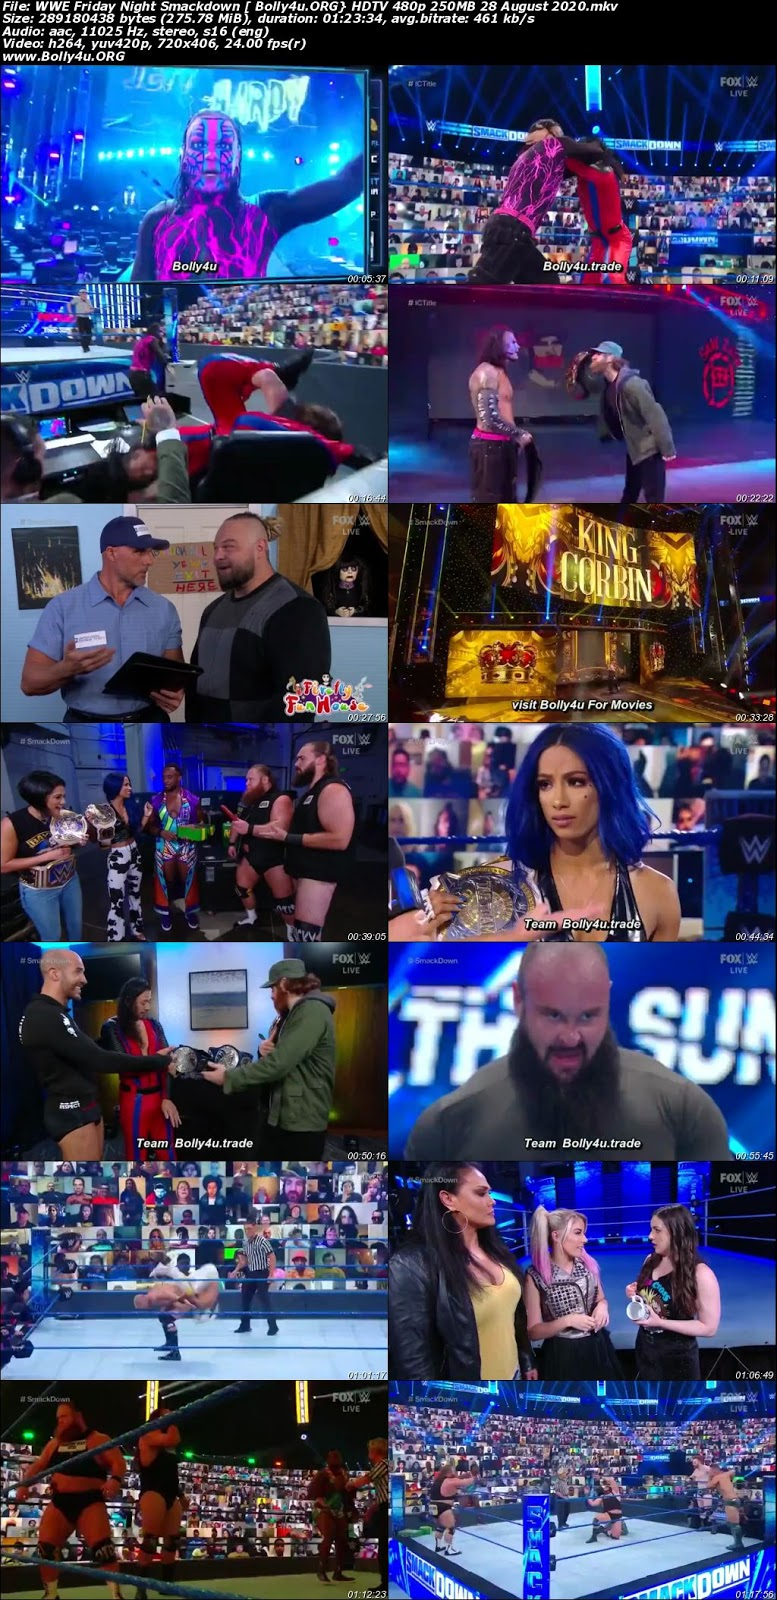 WWE Friday Night Smackdown HDTV 480p 250MB 28 August 2020 Download